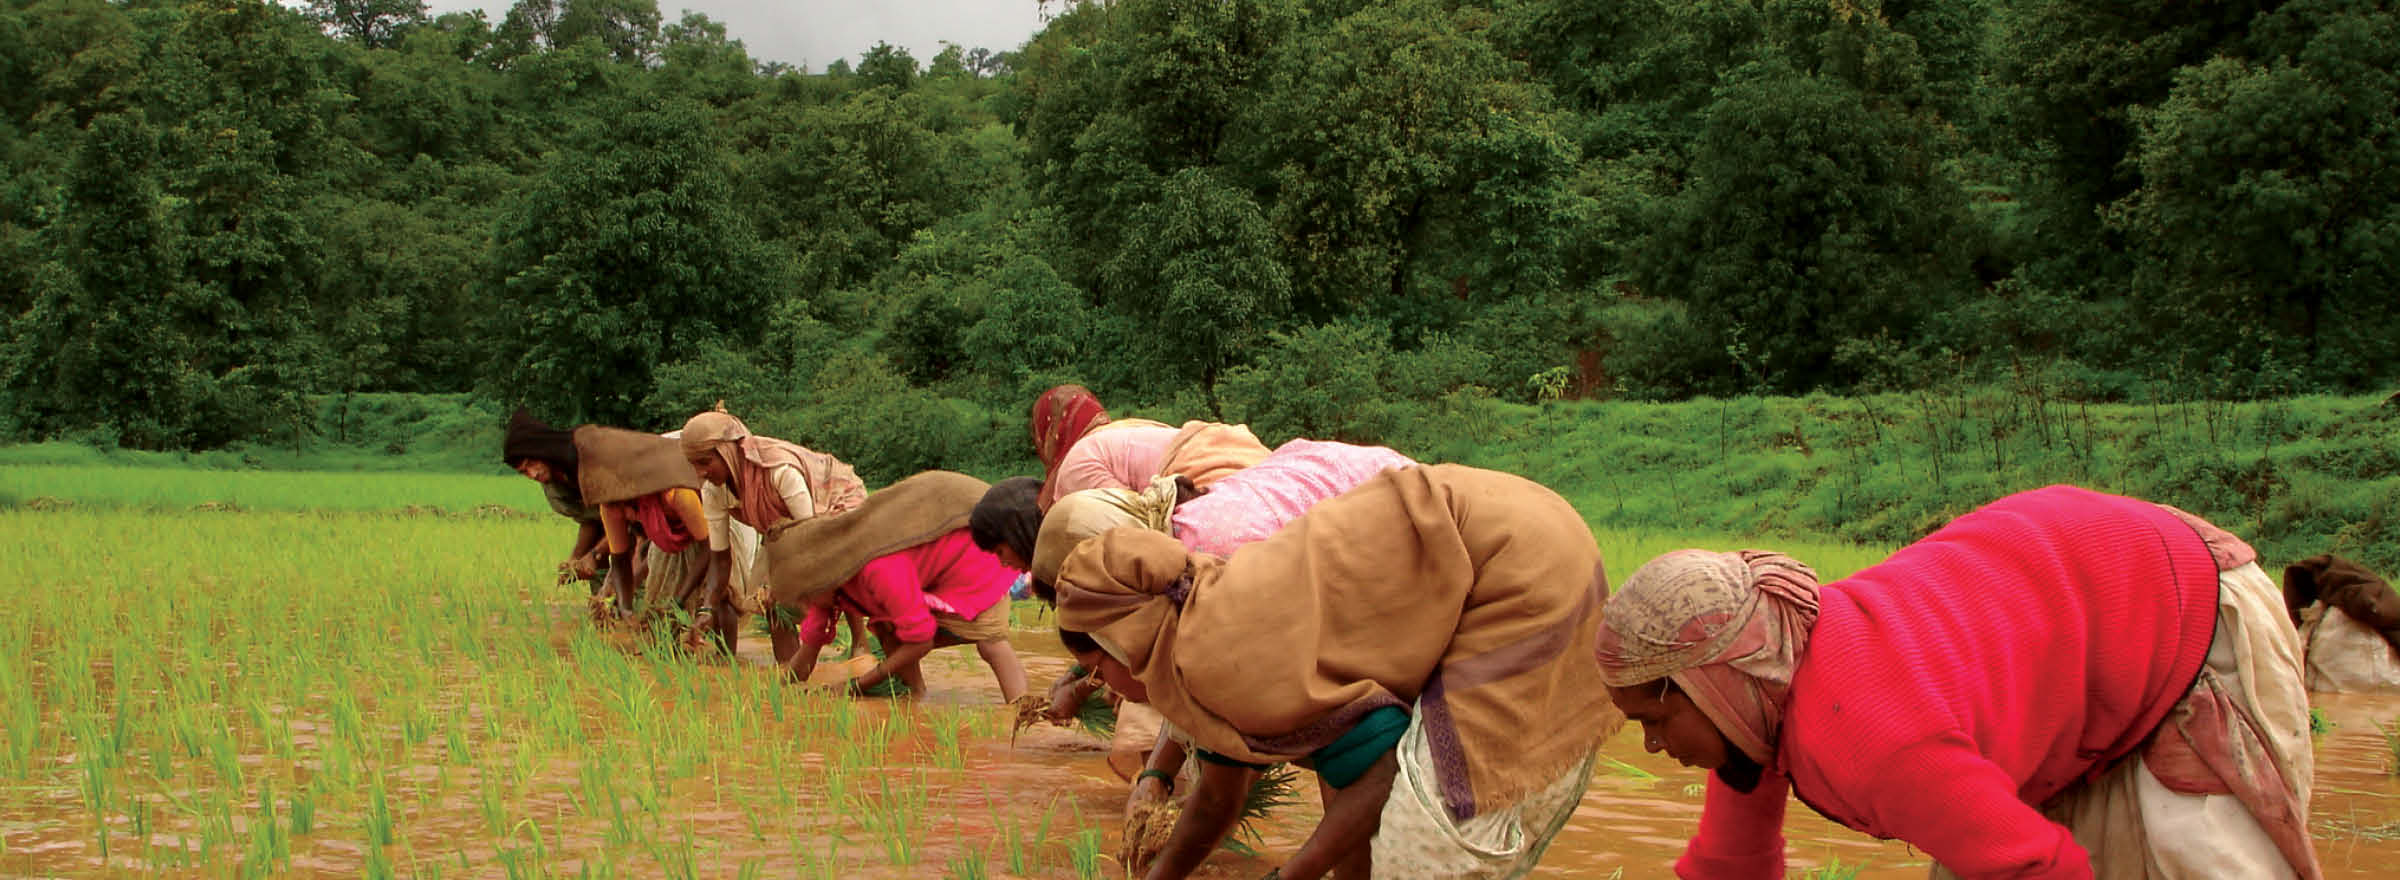 Farmers in India working in a flooded rice paddy